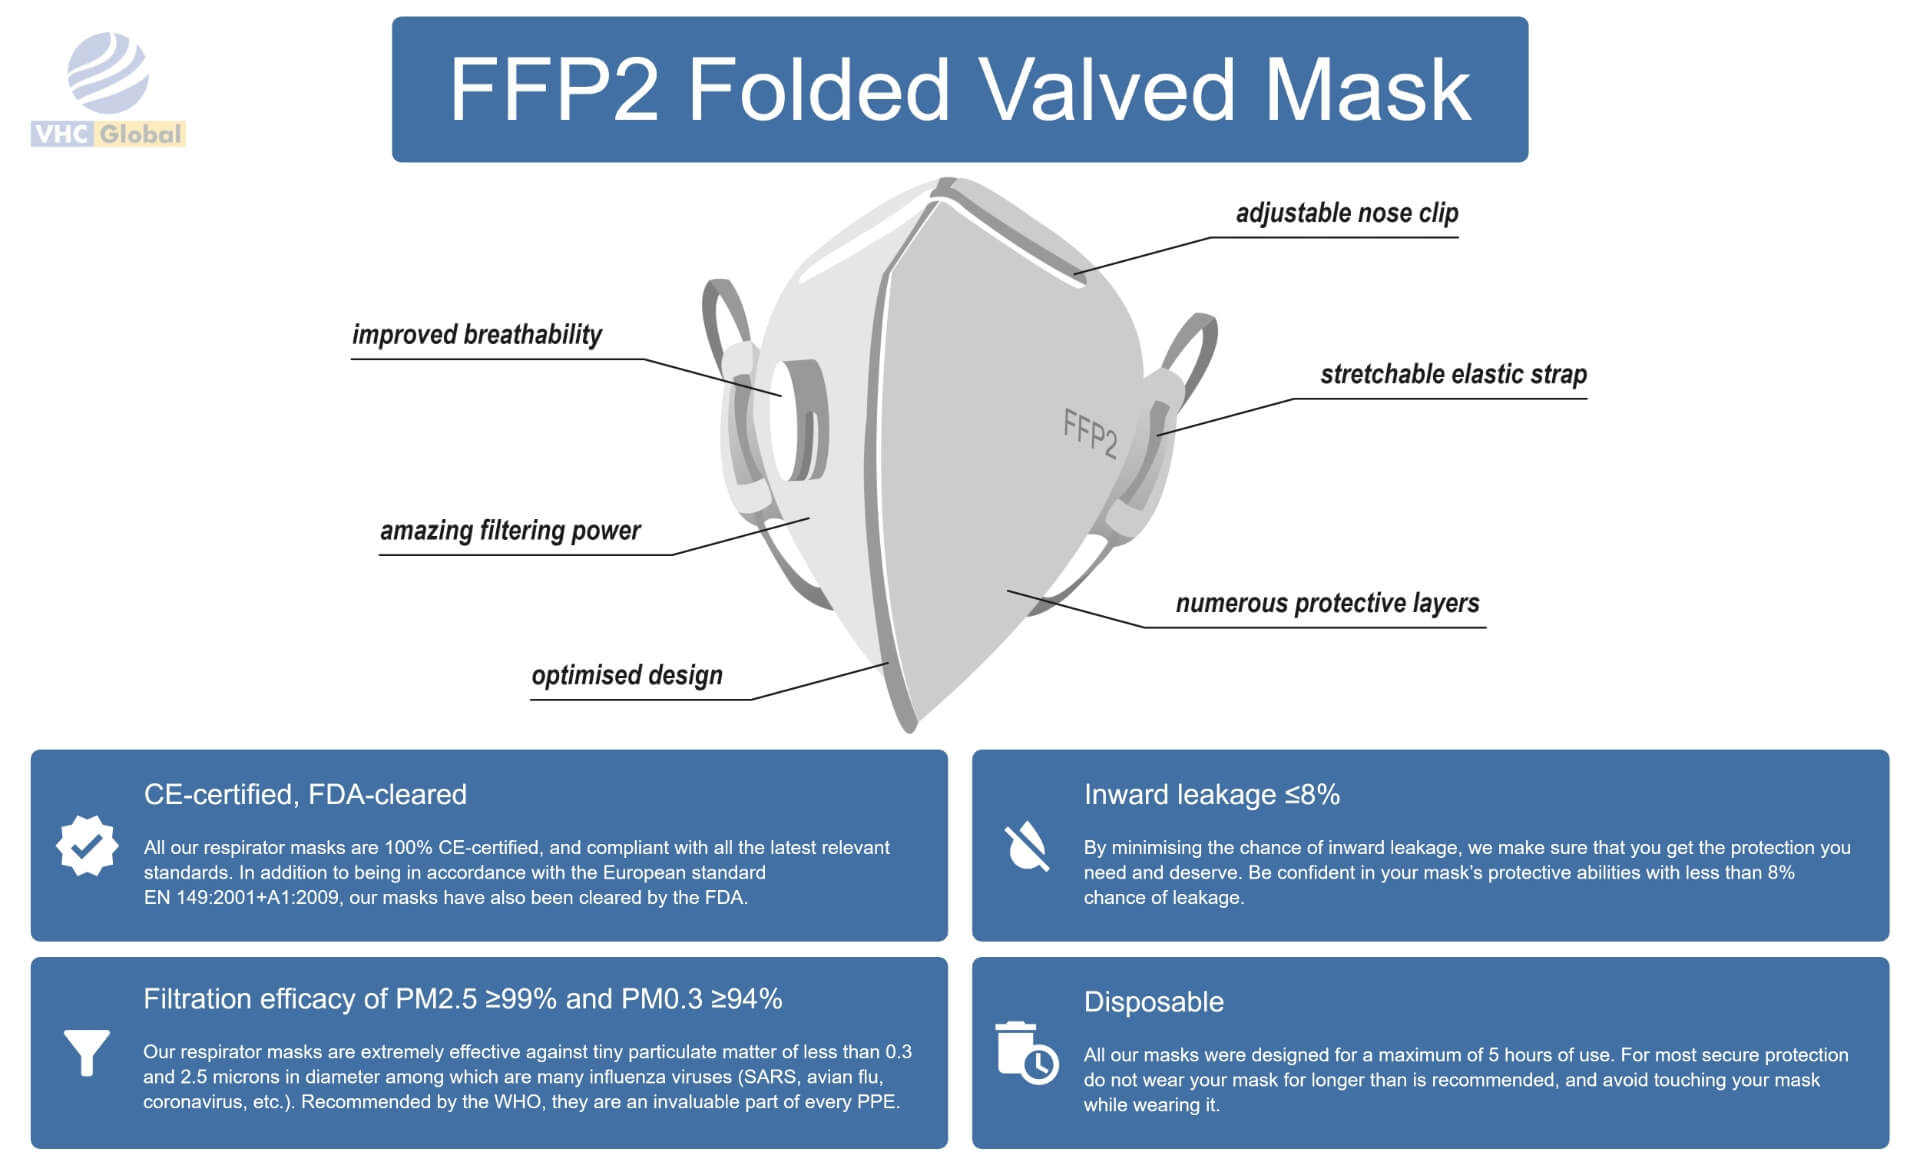 Infographic for the FFP2 Folded Valved Mask. All details for this mask are on this infographic. From nose to the chin. Adjustable nose clip, improved breathability, numerous protective layers, amazing filtering power, optimized design and stretchable elastic strap